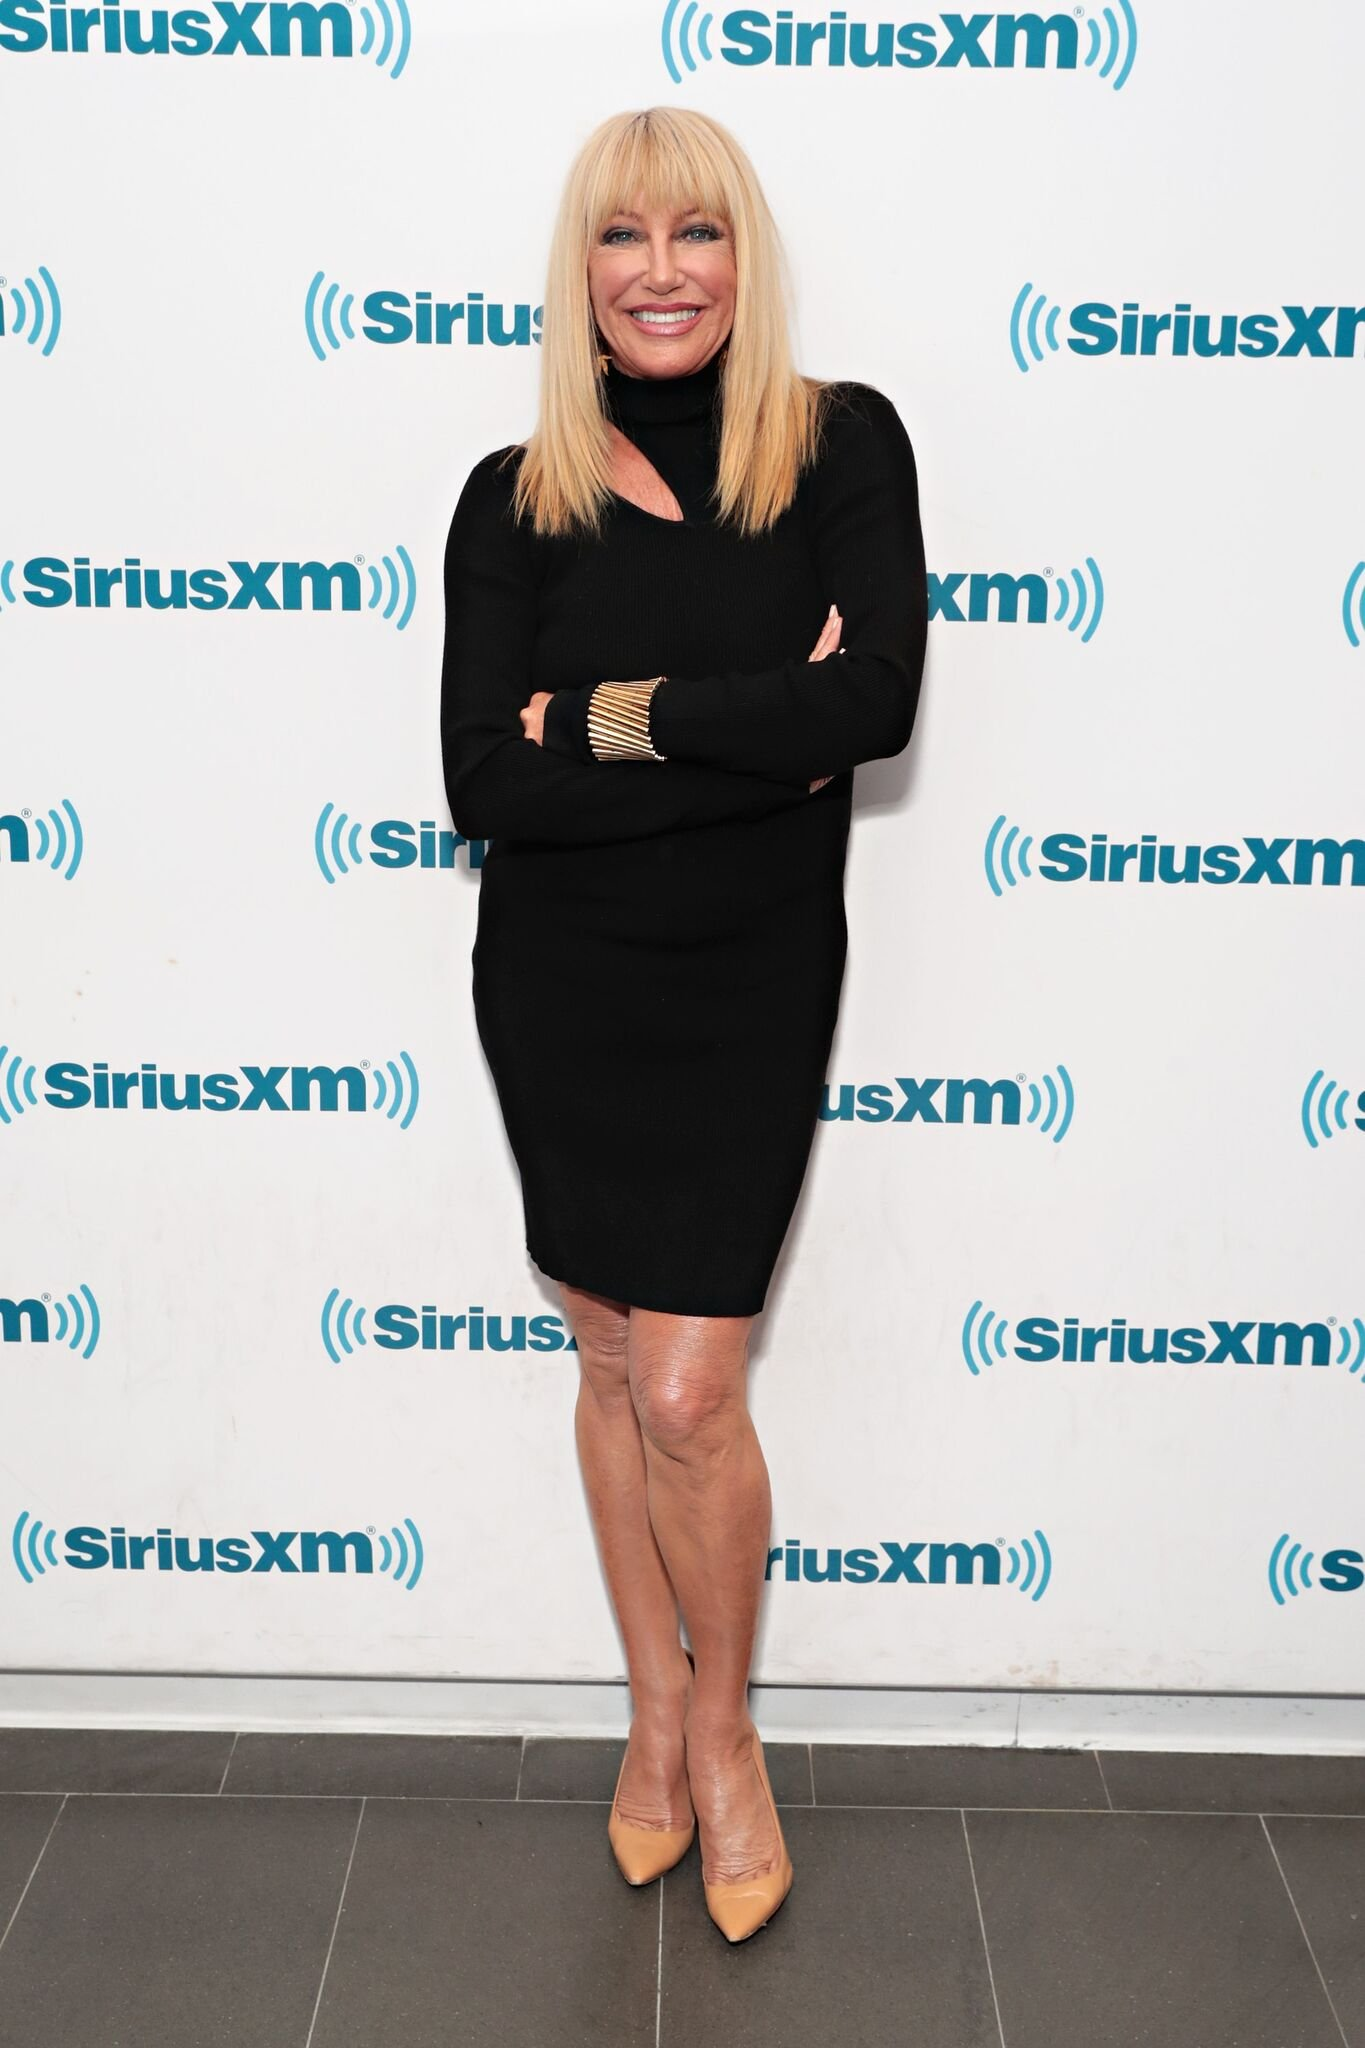 Suzanne Somers visits the SiriusXM Studios | Getty Images